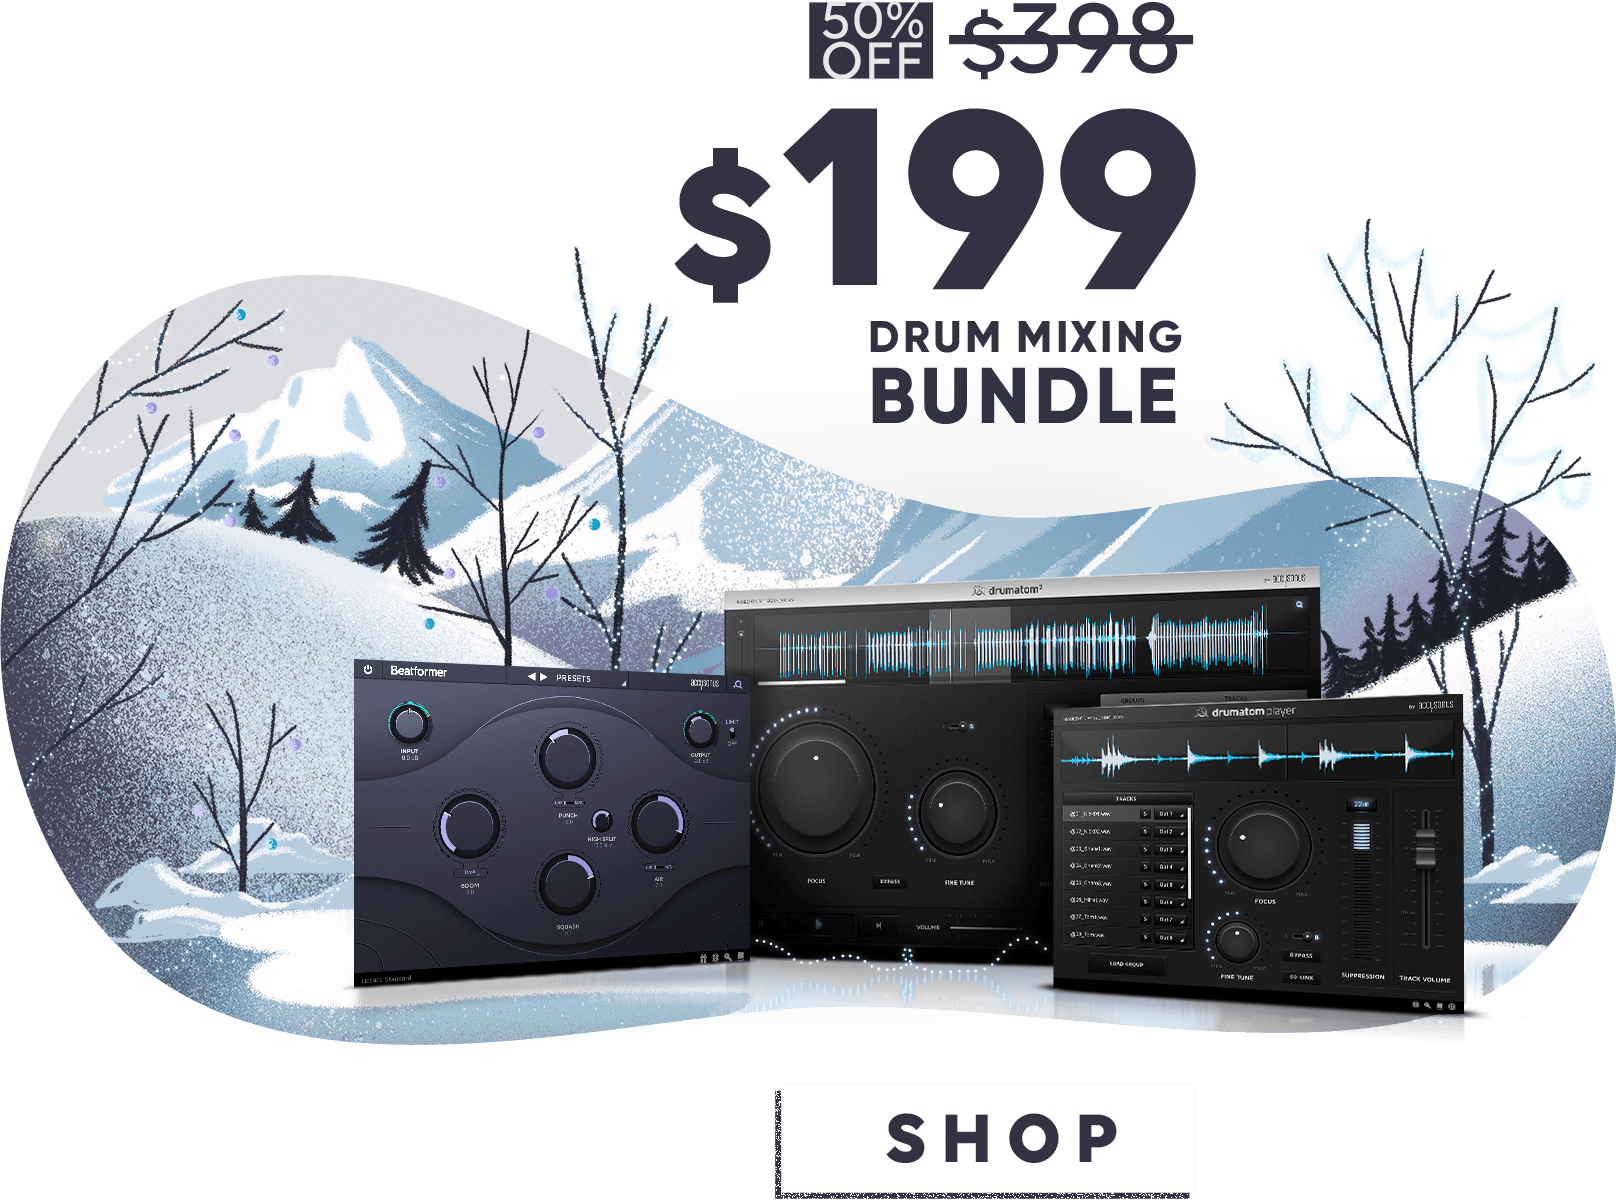 Drum making bundle, end of year sale